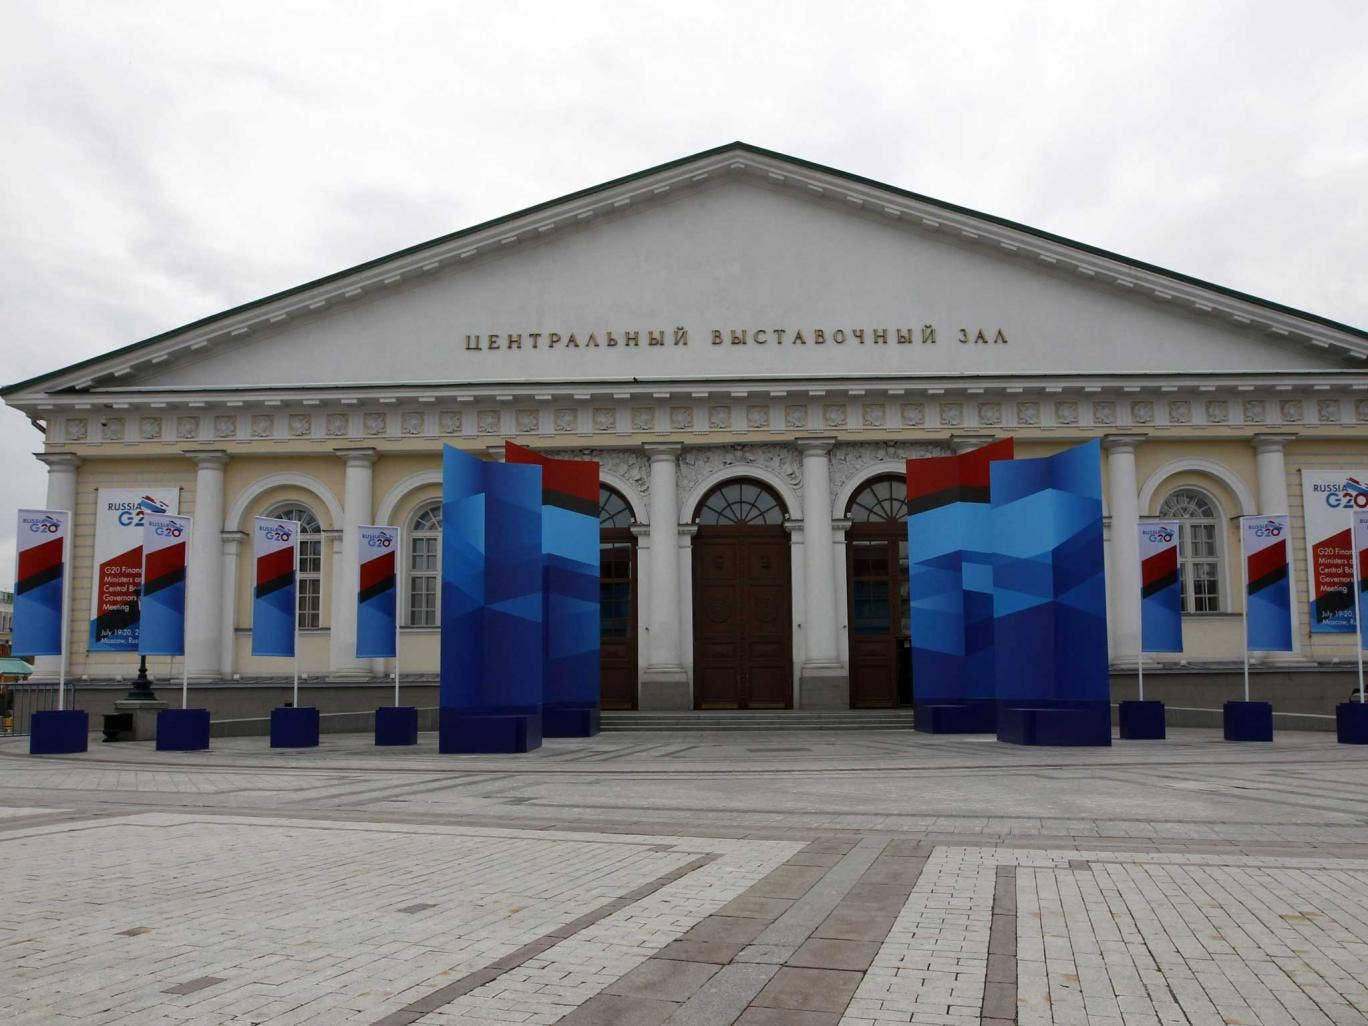 The Manezh Exhibition Center - the venue for this week's meeting of G20 Finance Ministers in Moscow